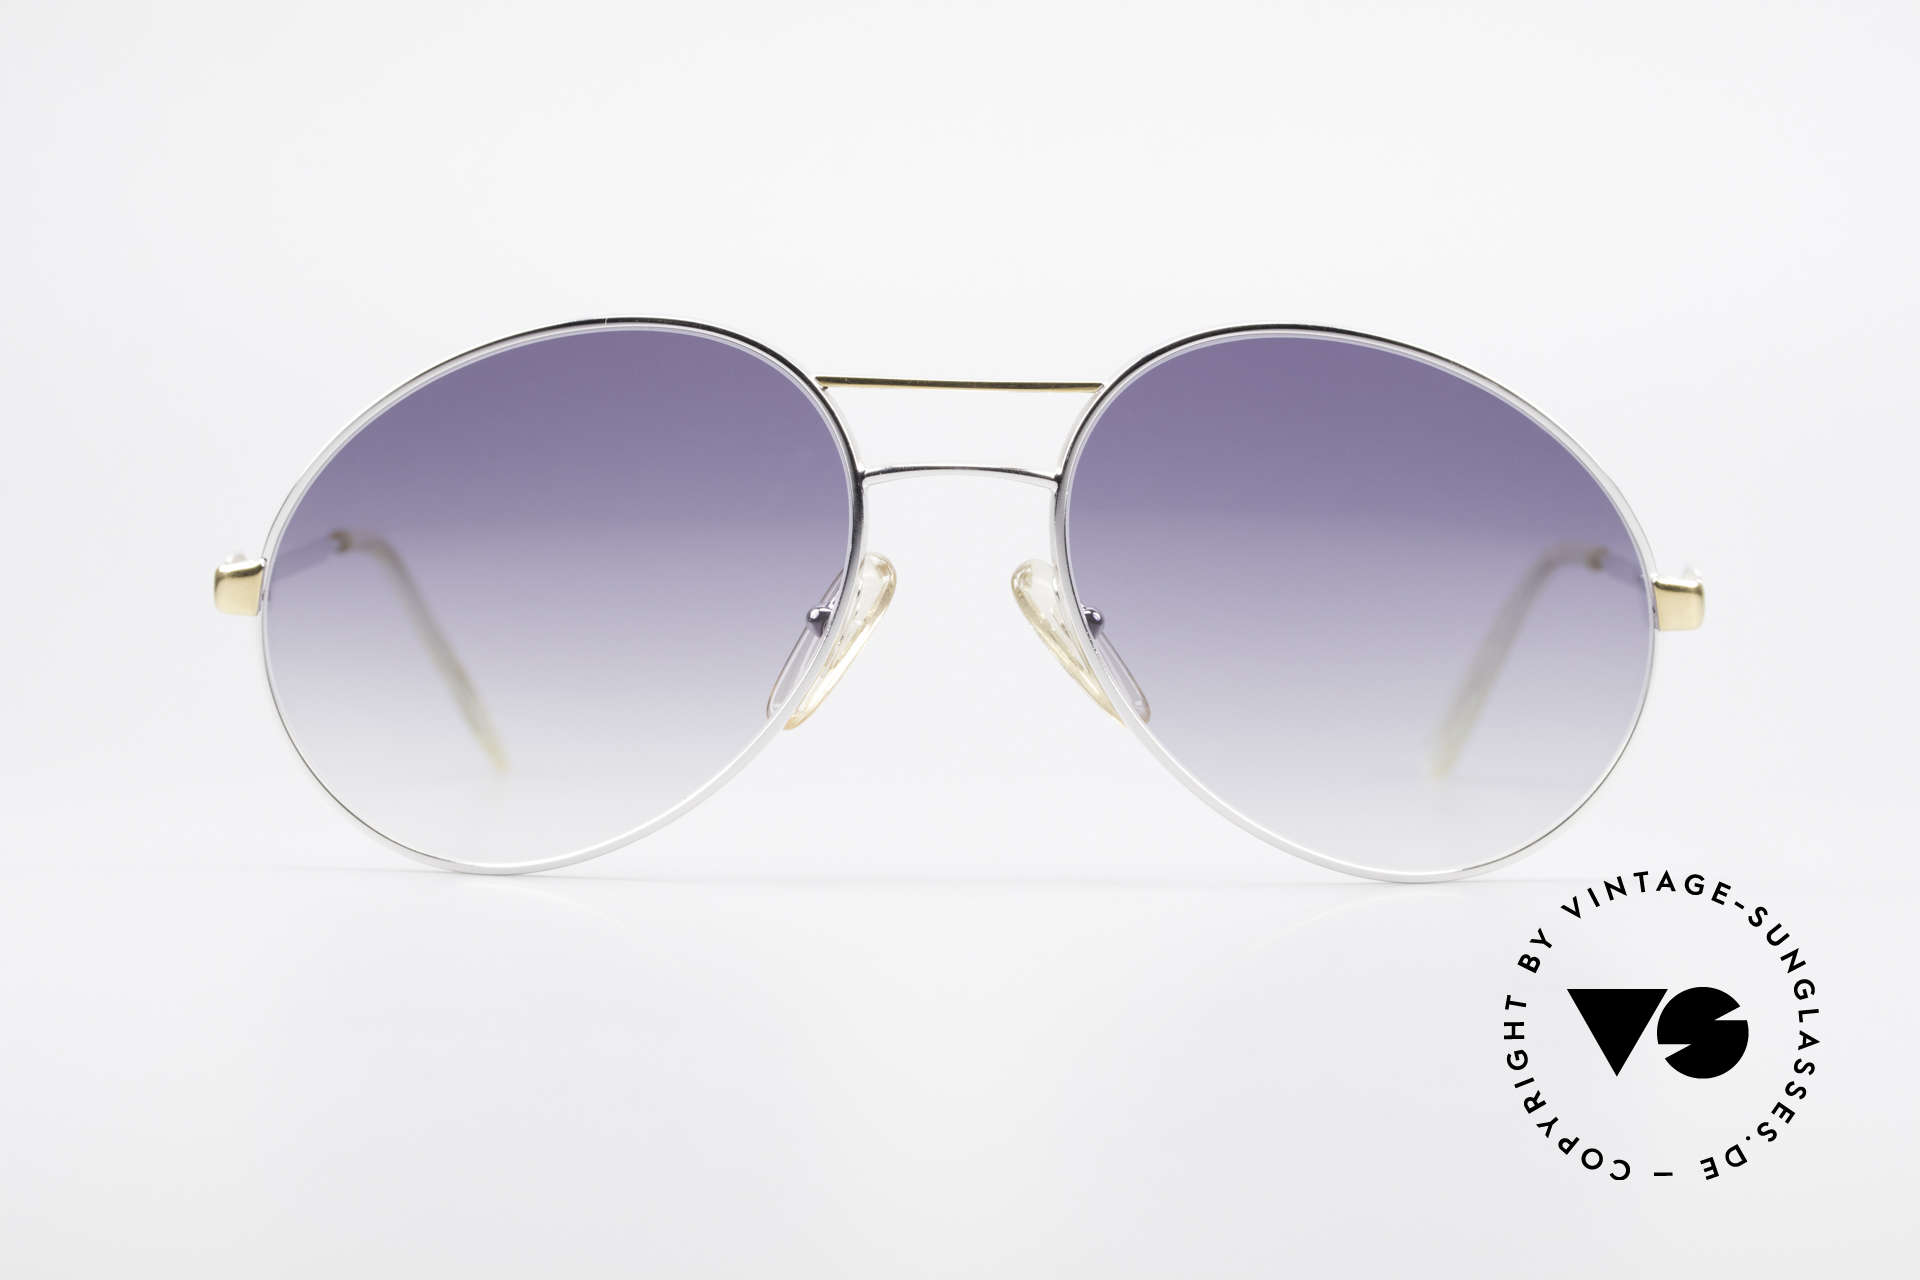 Bugatti 65984 Original 80's Shades No Retro, extraordinary frame design (simply striking), Made for Men